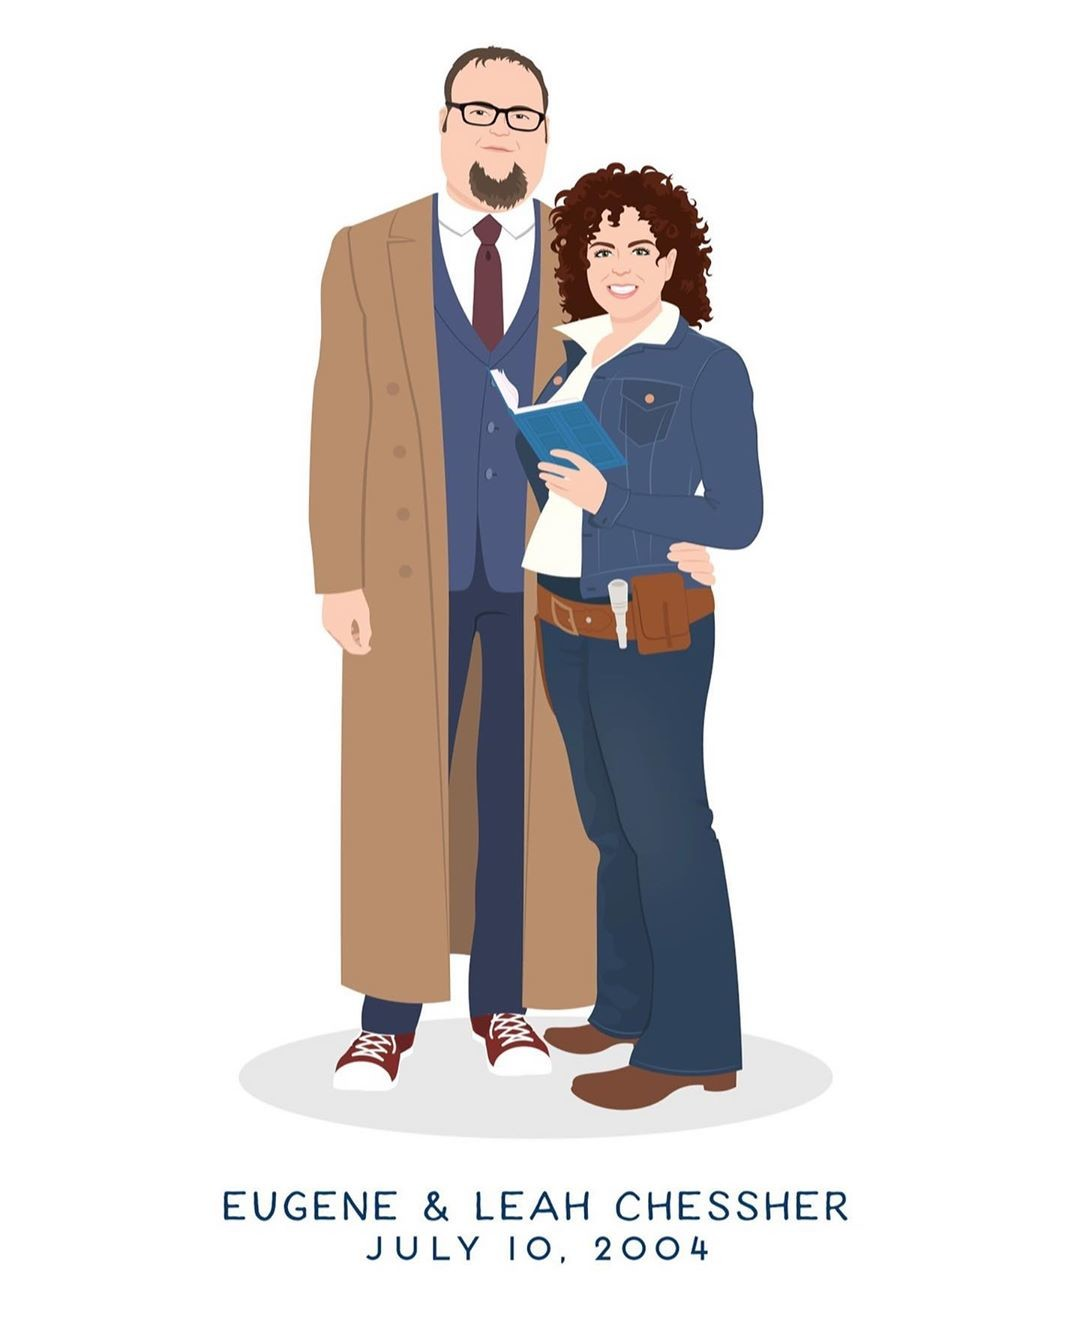 Calling all Whovians! How adorable is this anniversary portrait with